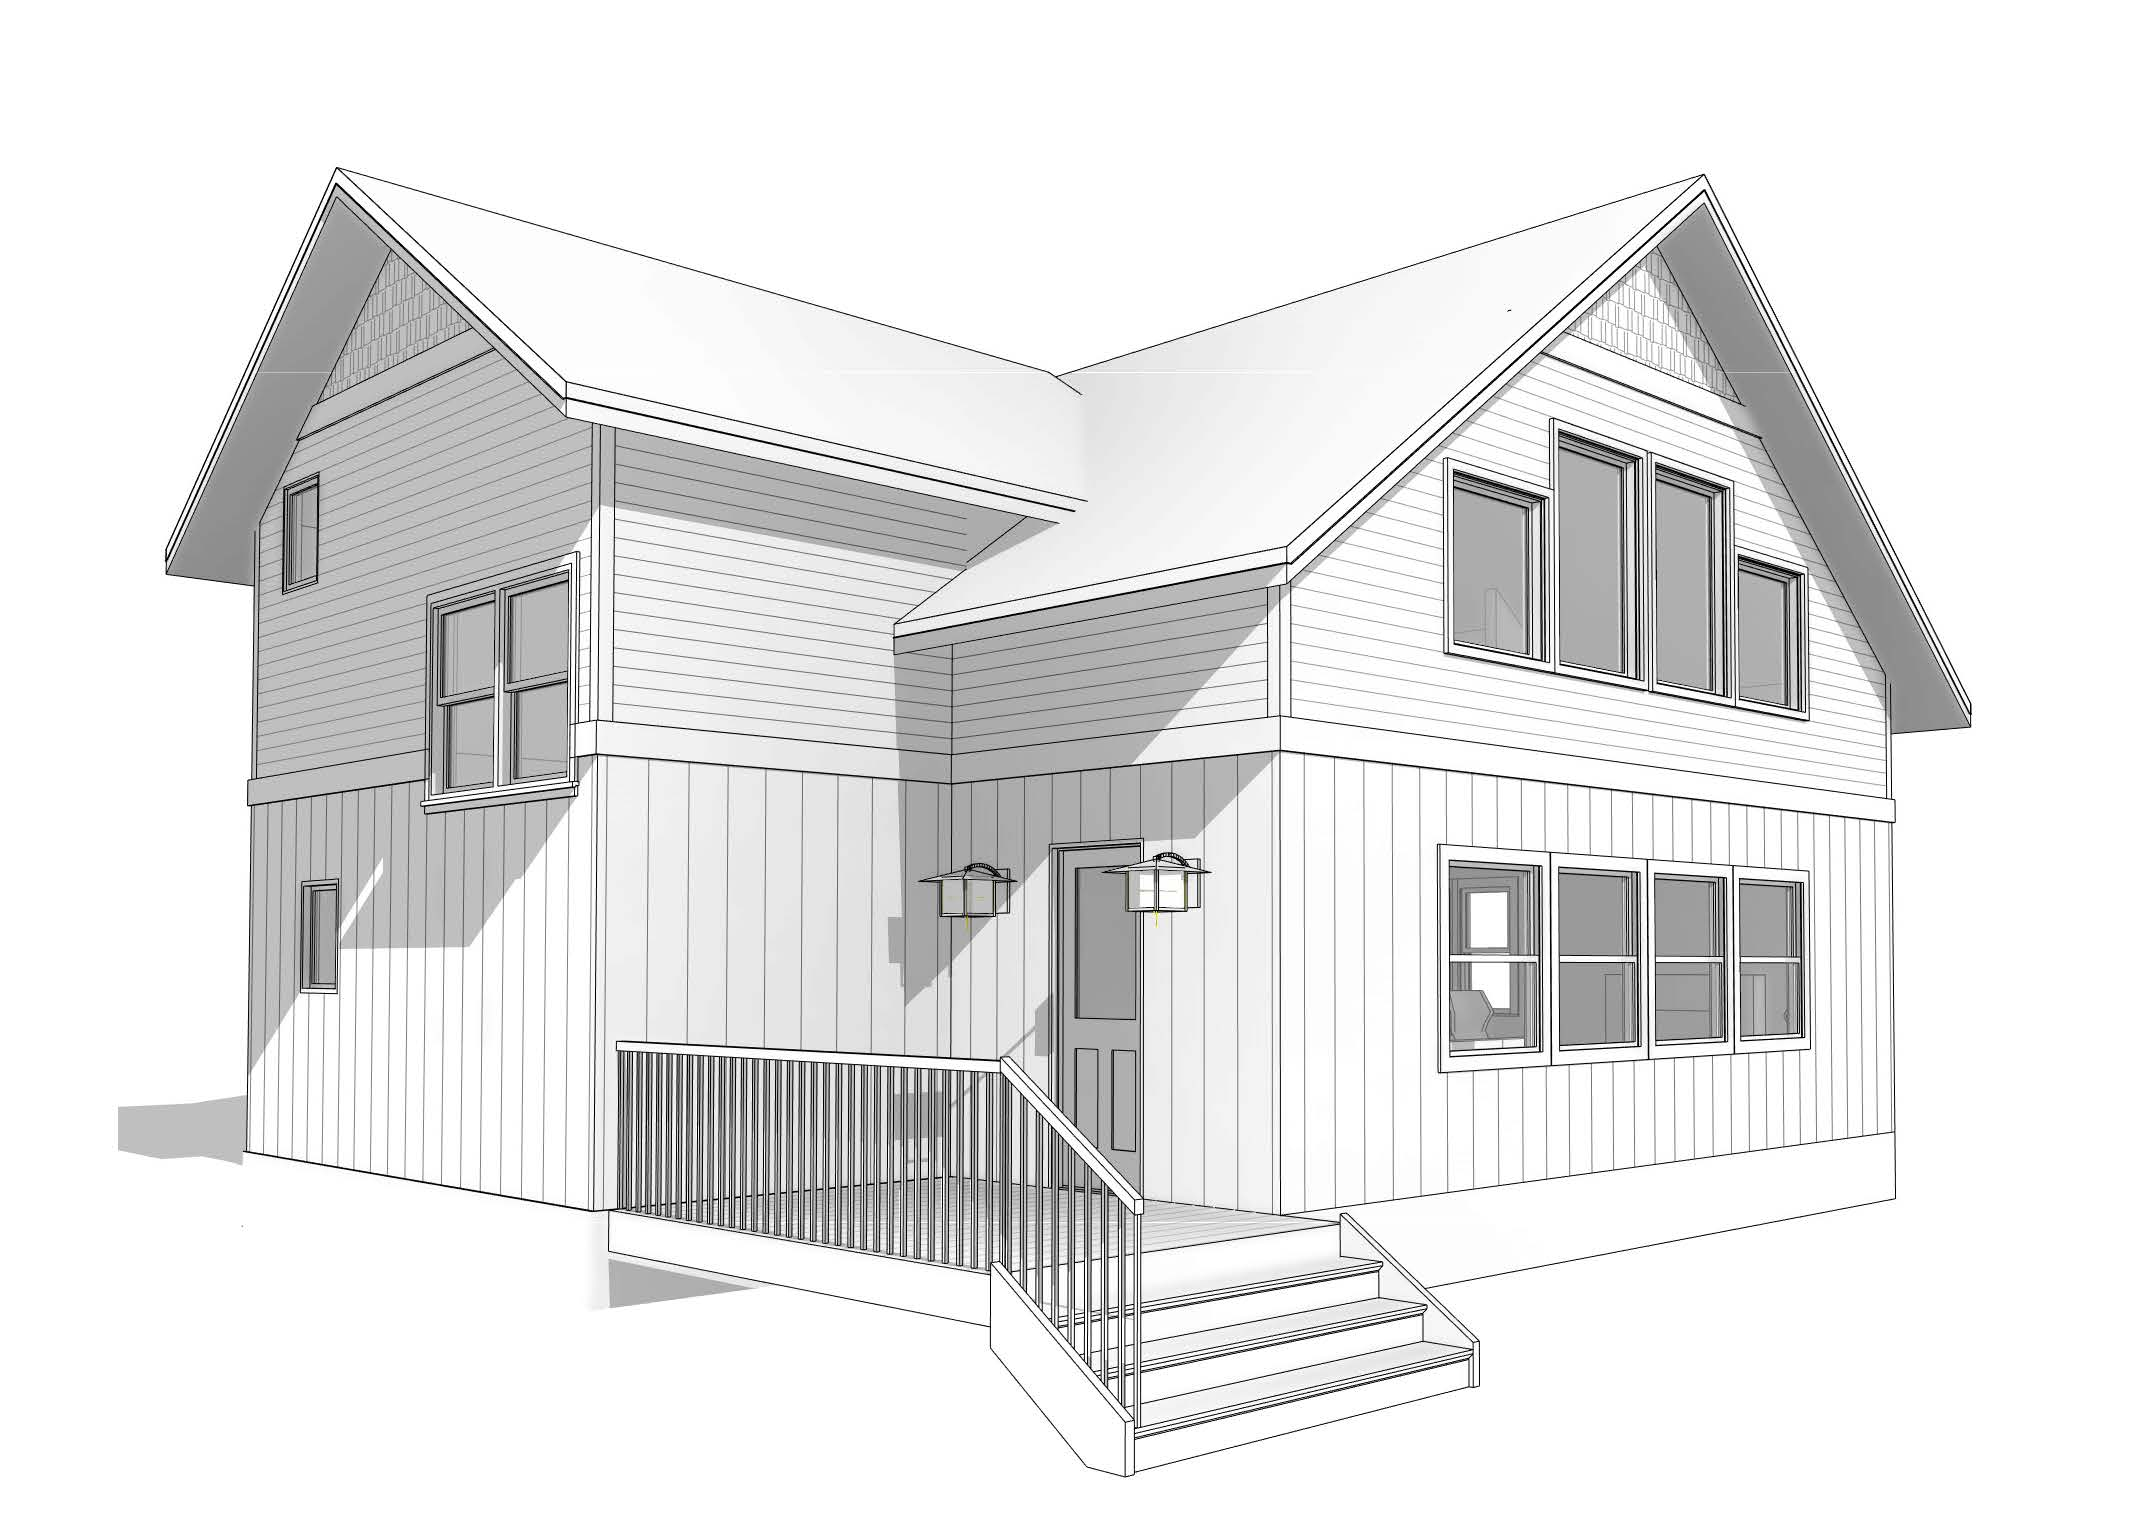 Proposed Cottage 2nd Story Loft Addition (see Image #2 below for before picture).